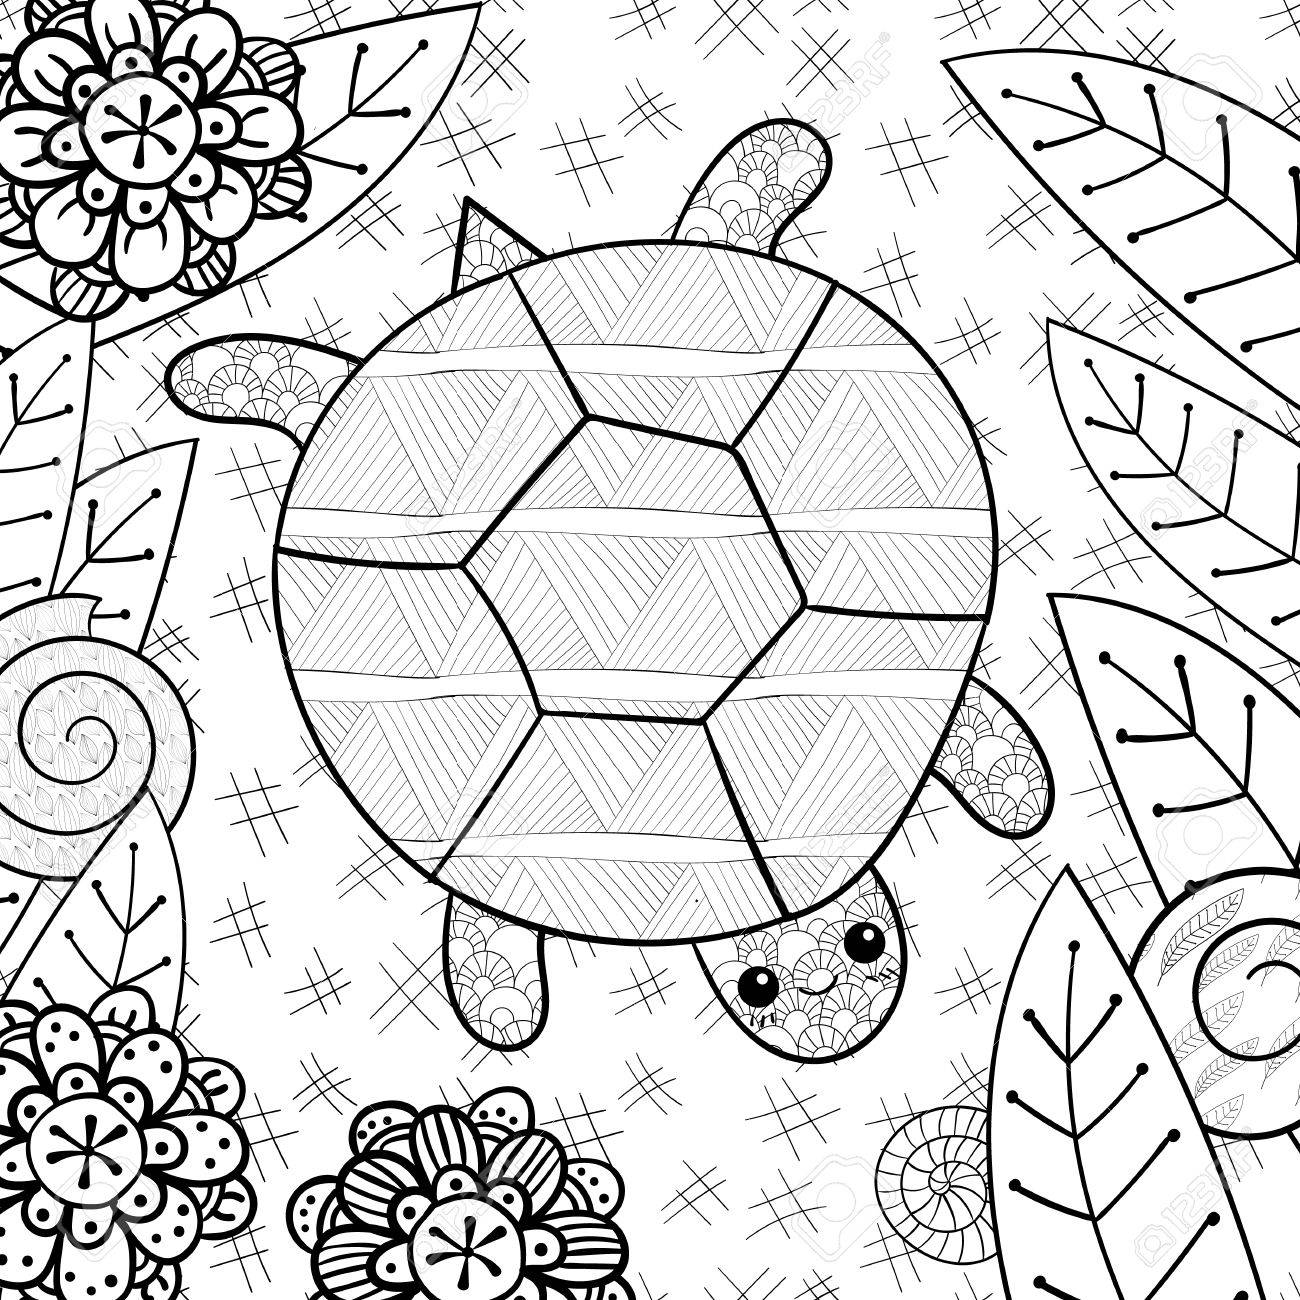 Cute Turtle Adult Coloring Book Page Happy Smiling In Garden Whimsical Line Art